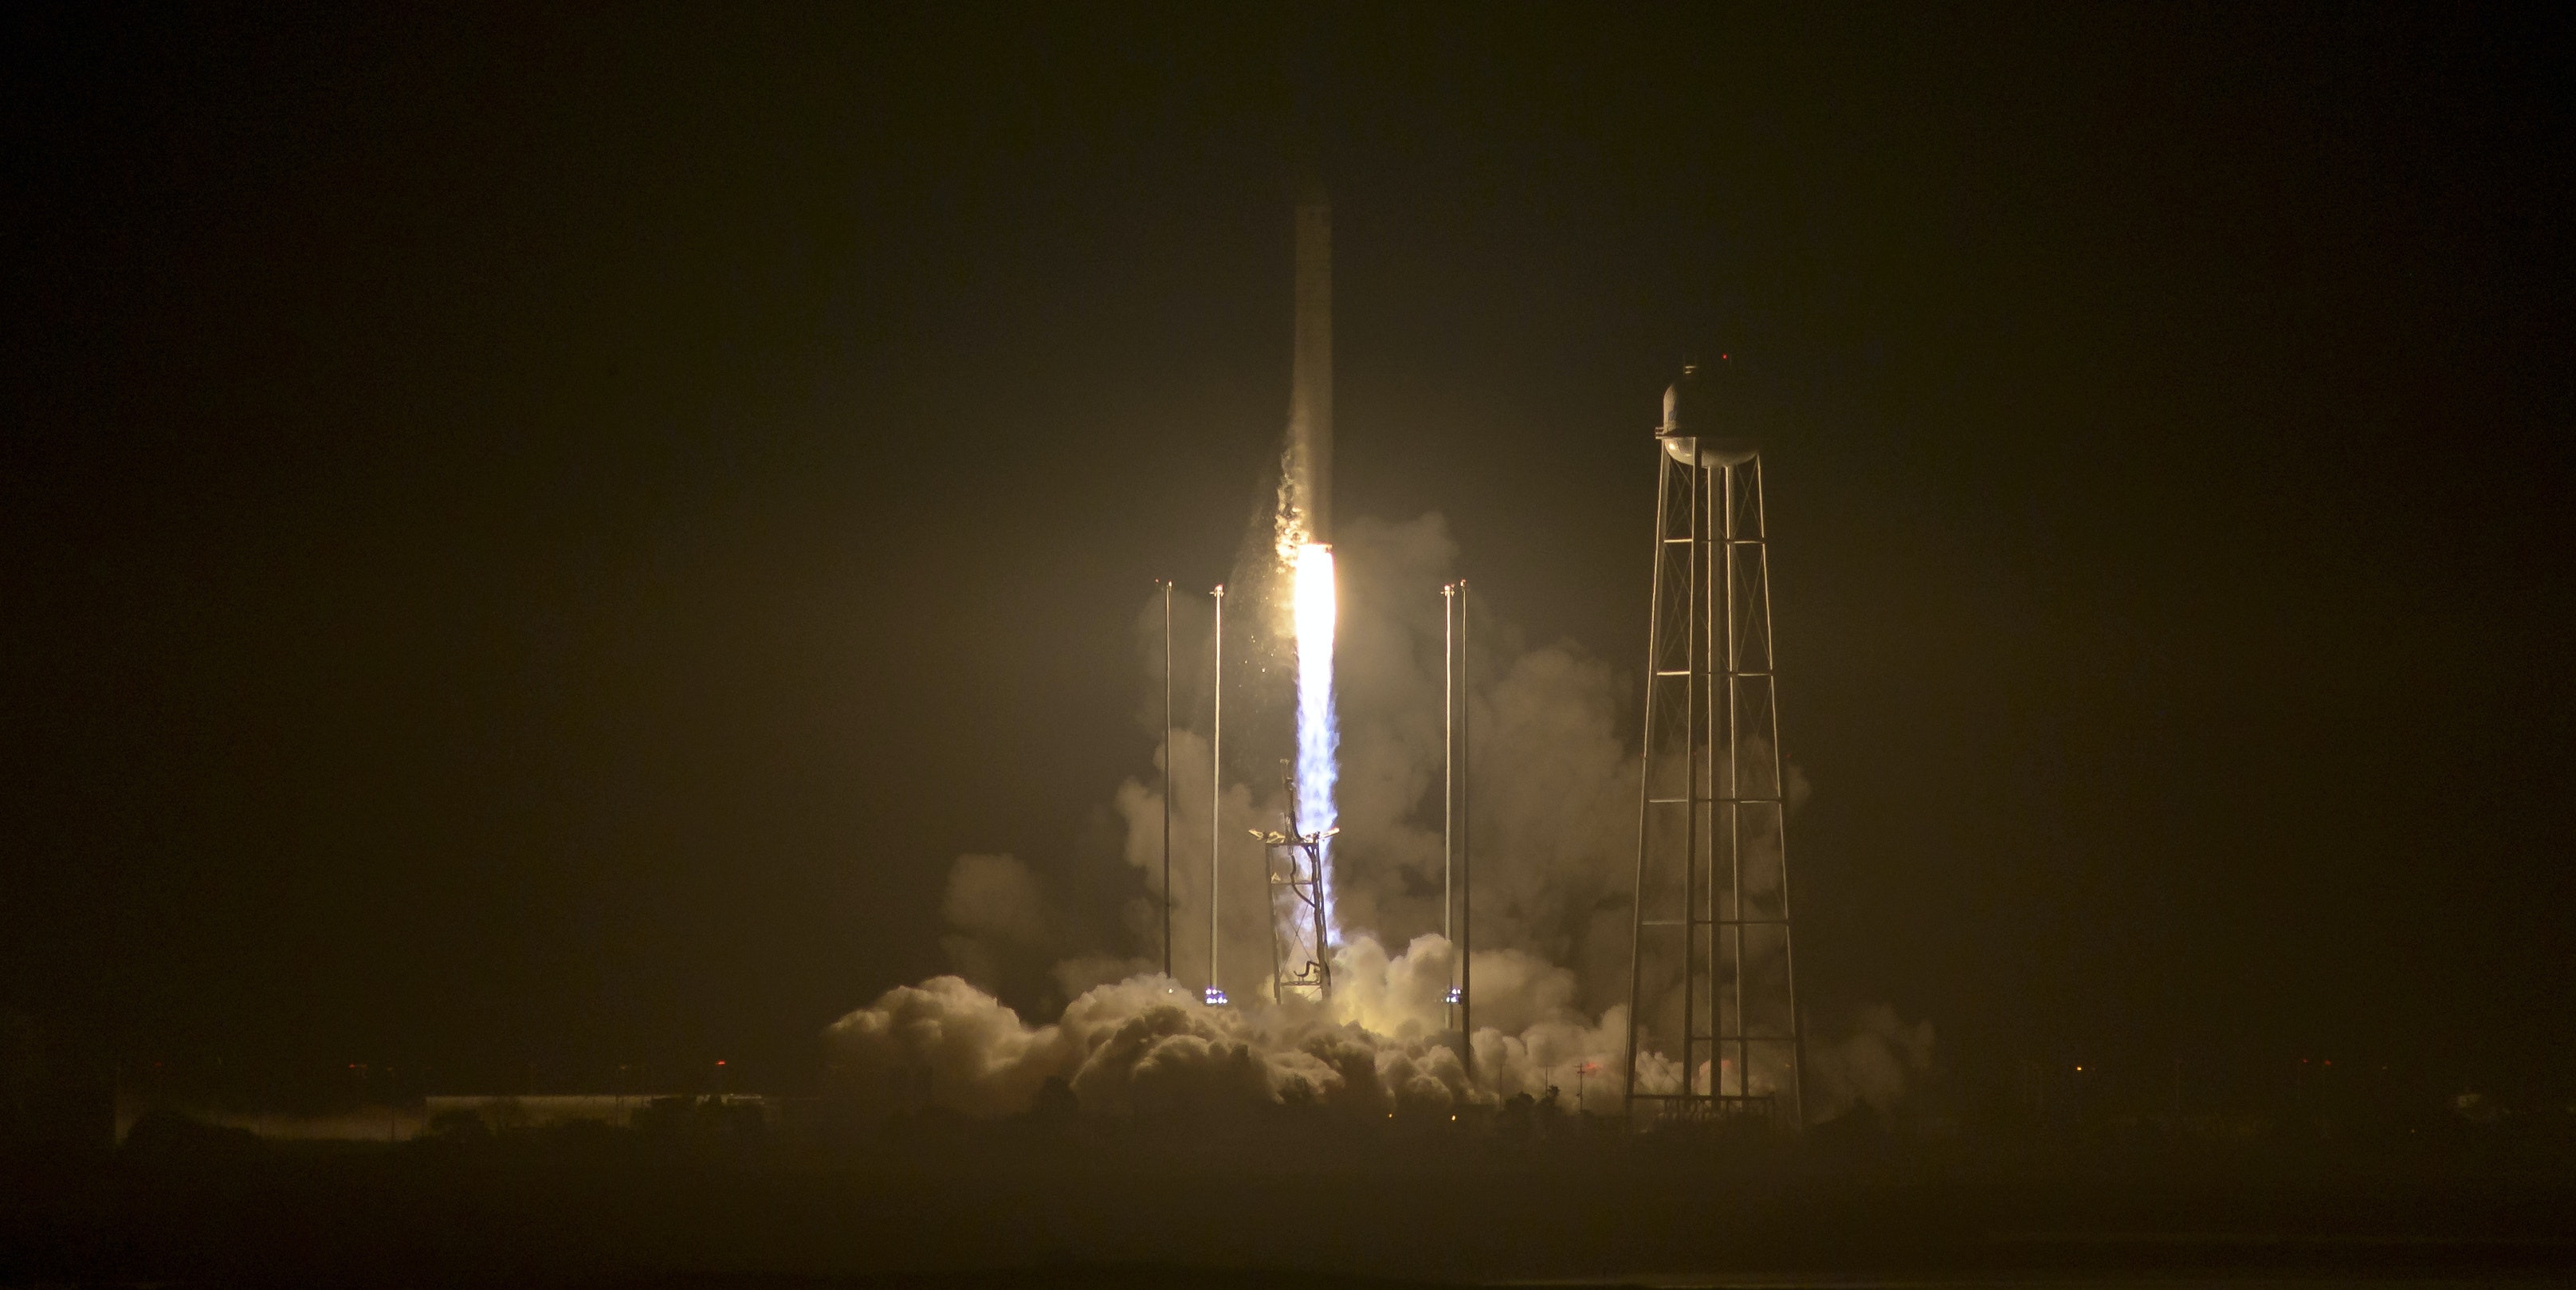 In this handout provided by NASA, the Orbital ATK Antares rocket, with the Cygnus spacecraft onboard, launches from Pad-0A at NASA's Wallops Flight Facility on October 17, 2016 in Wallops Island, Virginia. Orbital ATK's sixth contracted cargo resupply mission with NASA to the International Space Station is delivering over 5,100 pounds of science and research, crew supplies and vehicle hardware to the orbital laboratory and its crew.